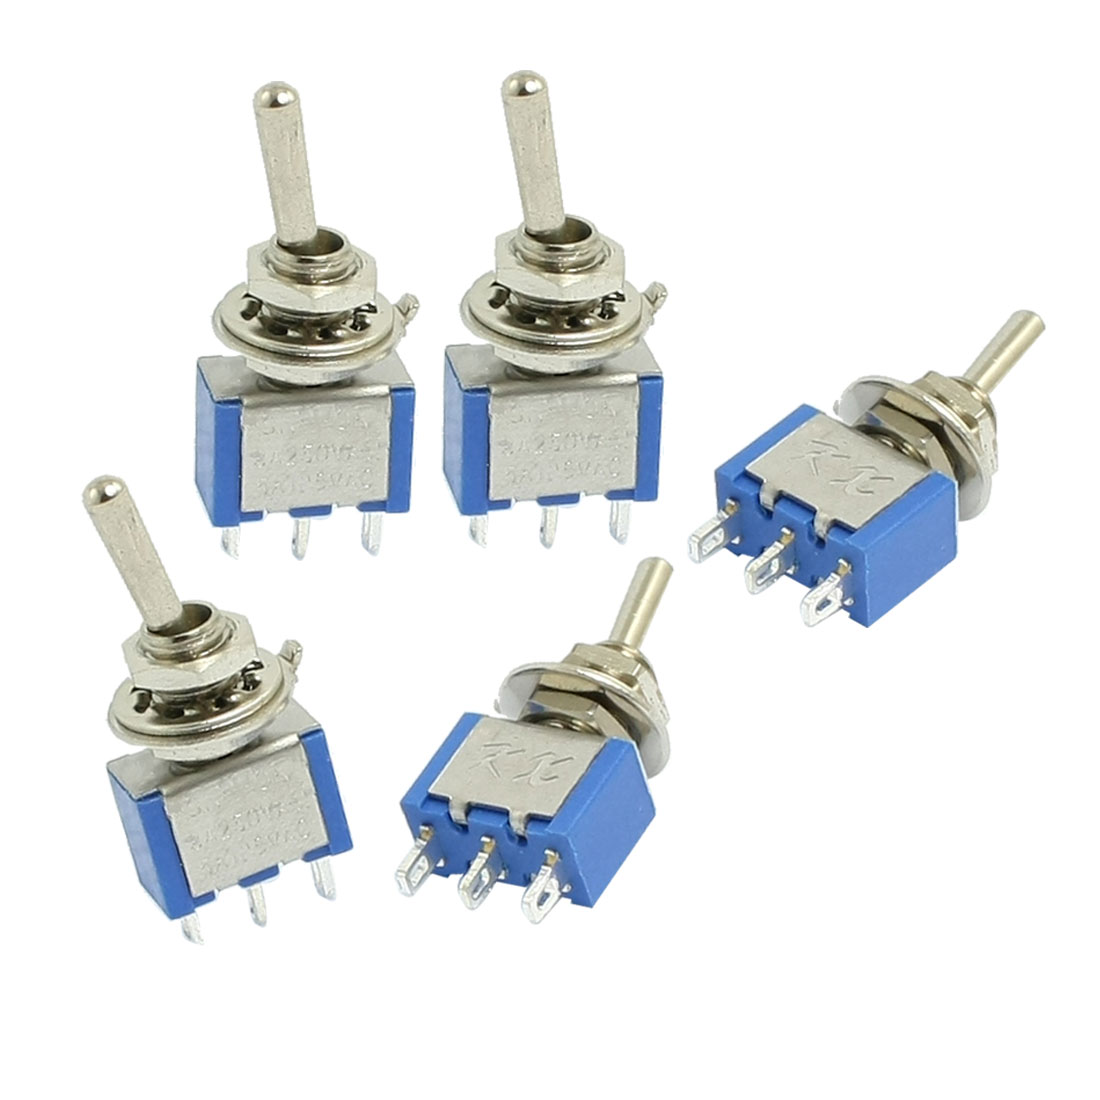 5 Pcs On/On SPDT Sinlge Pole Double Throw Mini Toggle Switch AC 250V/3A 125V/5A